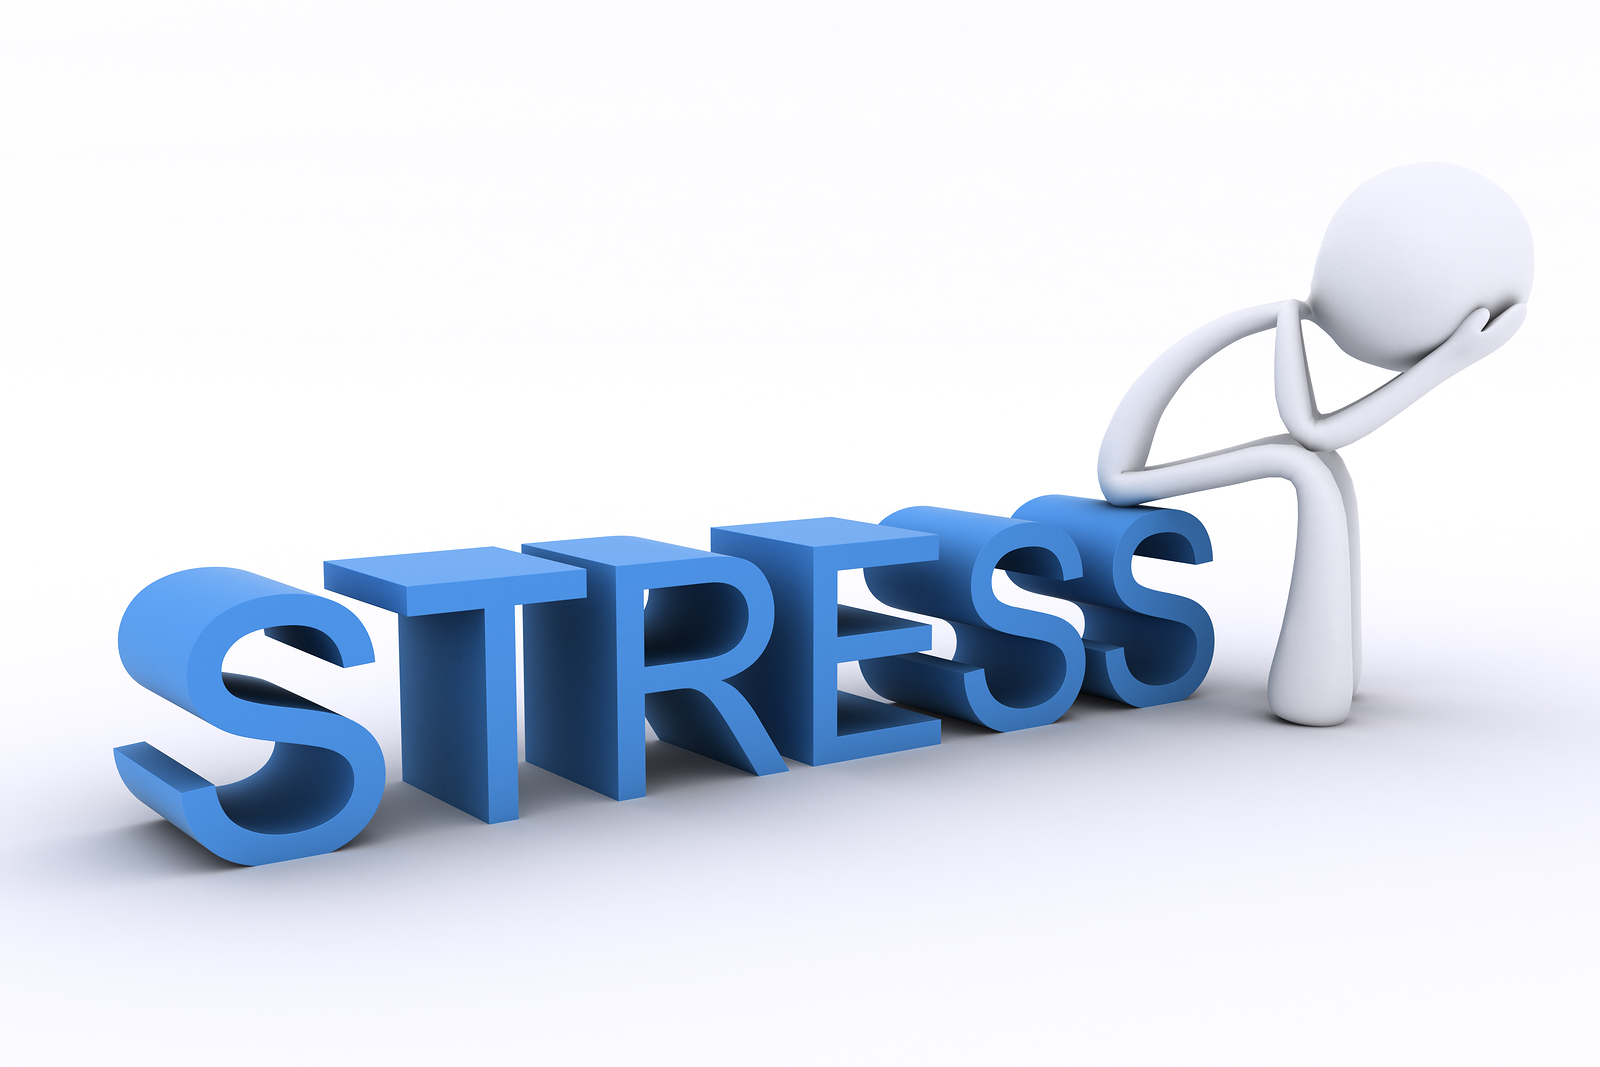 3D render showing a character sitting on a word, with head in hands looking stressed.